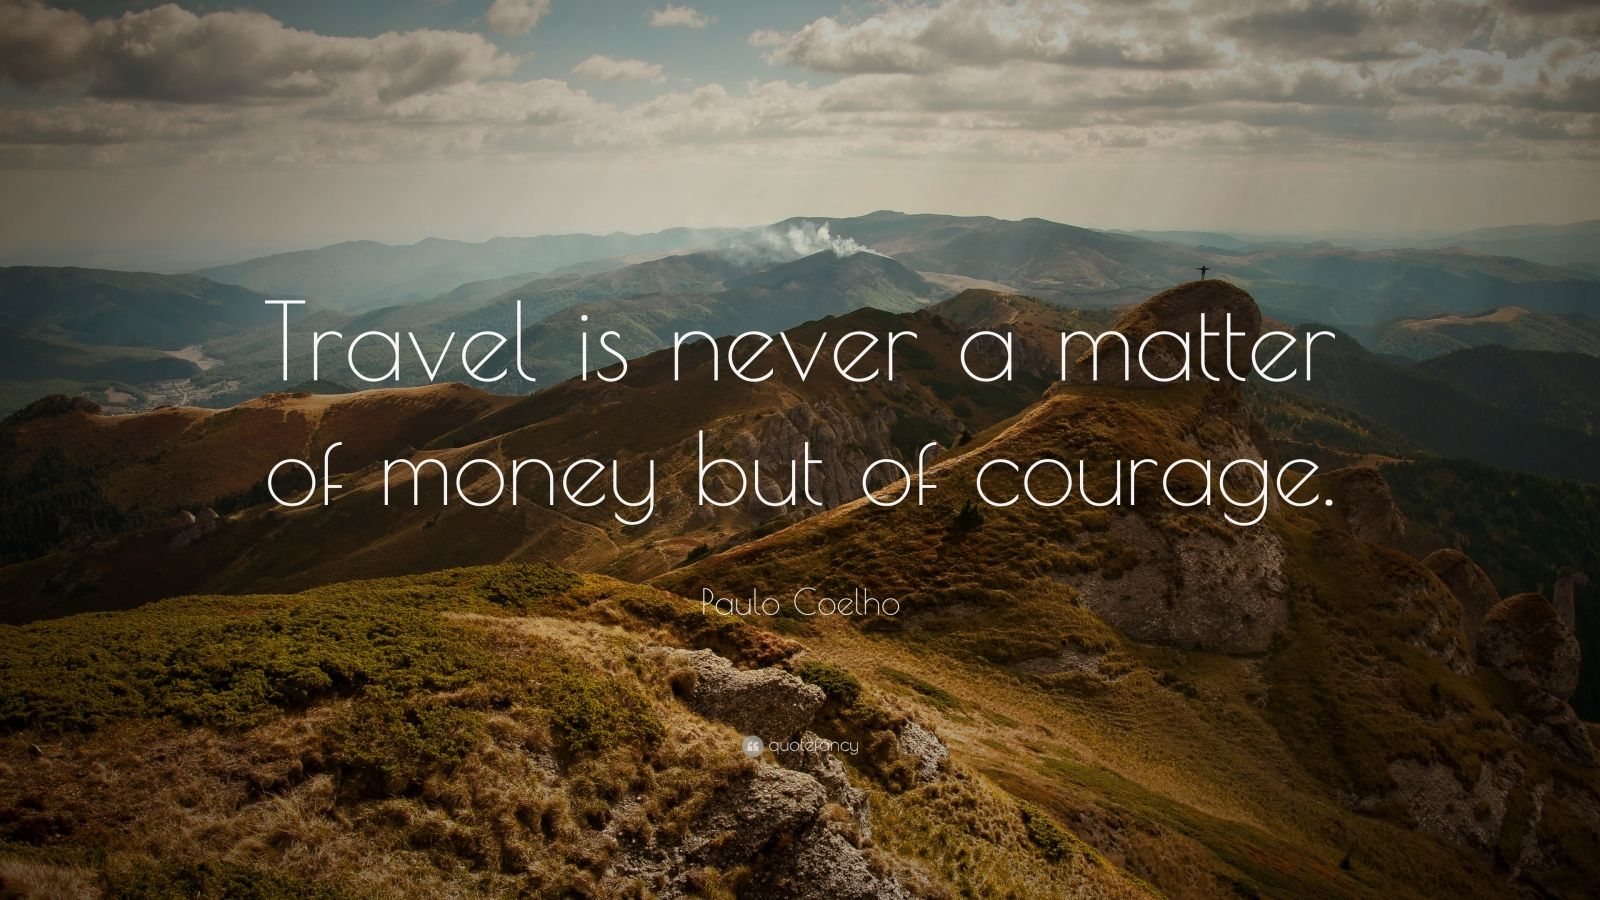 Paulo Coelho Quote: U201cTravel Is Never A Matter Of Money But Of Courage.